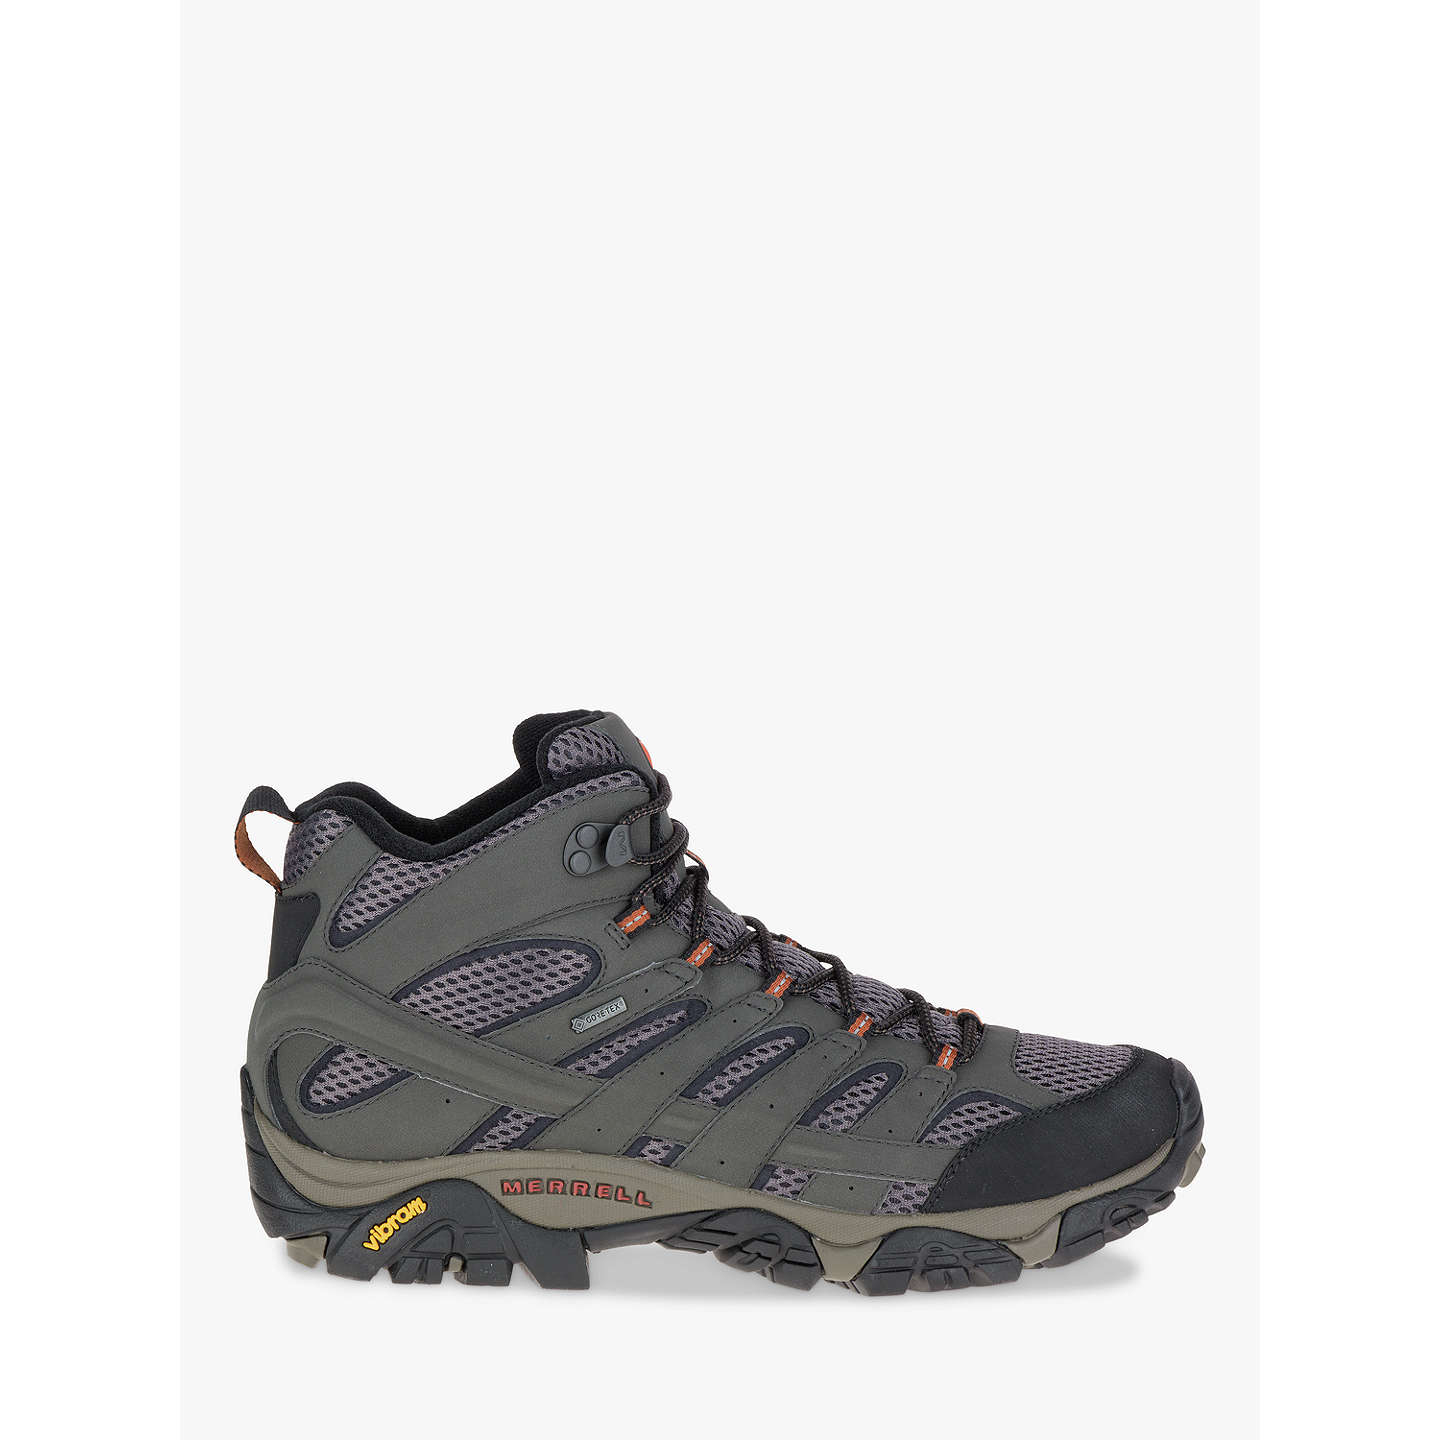 BuyMerrell MOAB 2 Mid GORE-TEX Men's Hiking Boots, Beluga, 7 Online at ...